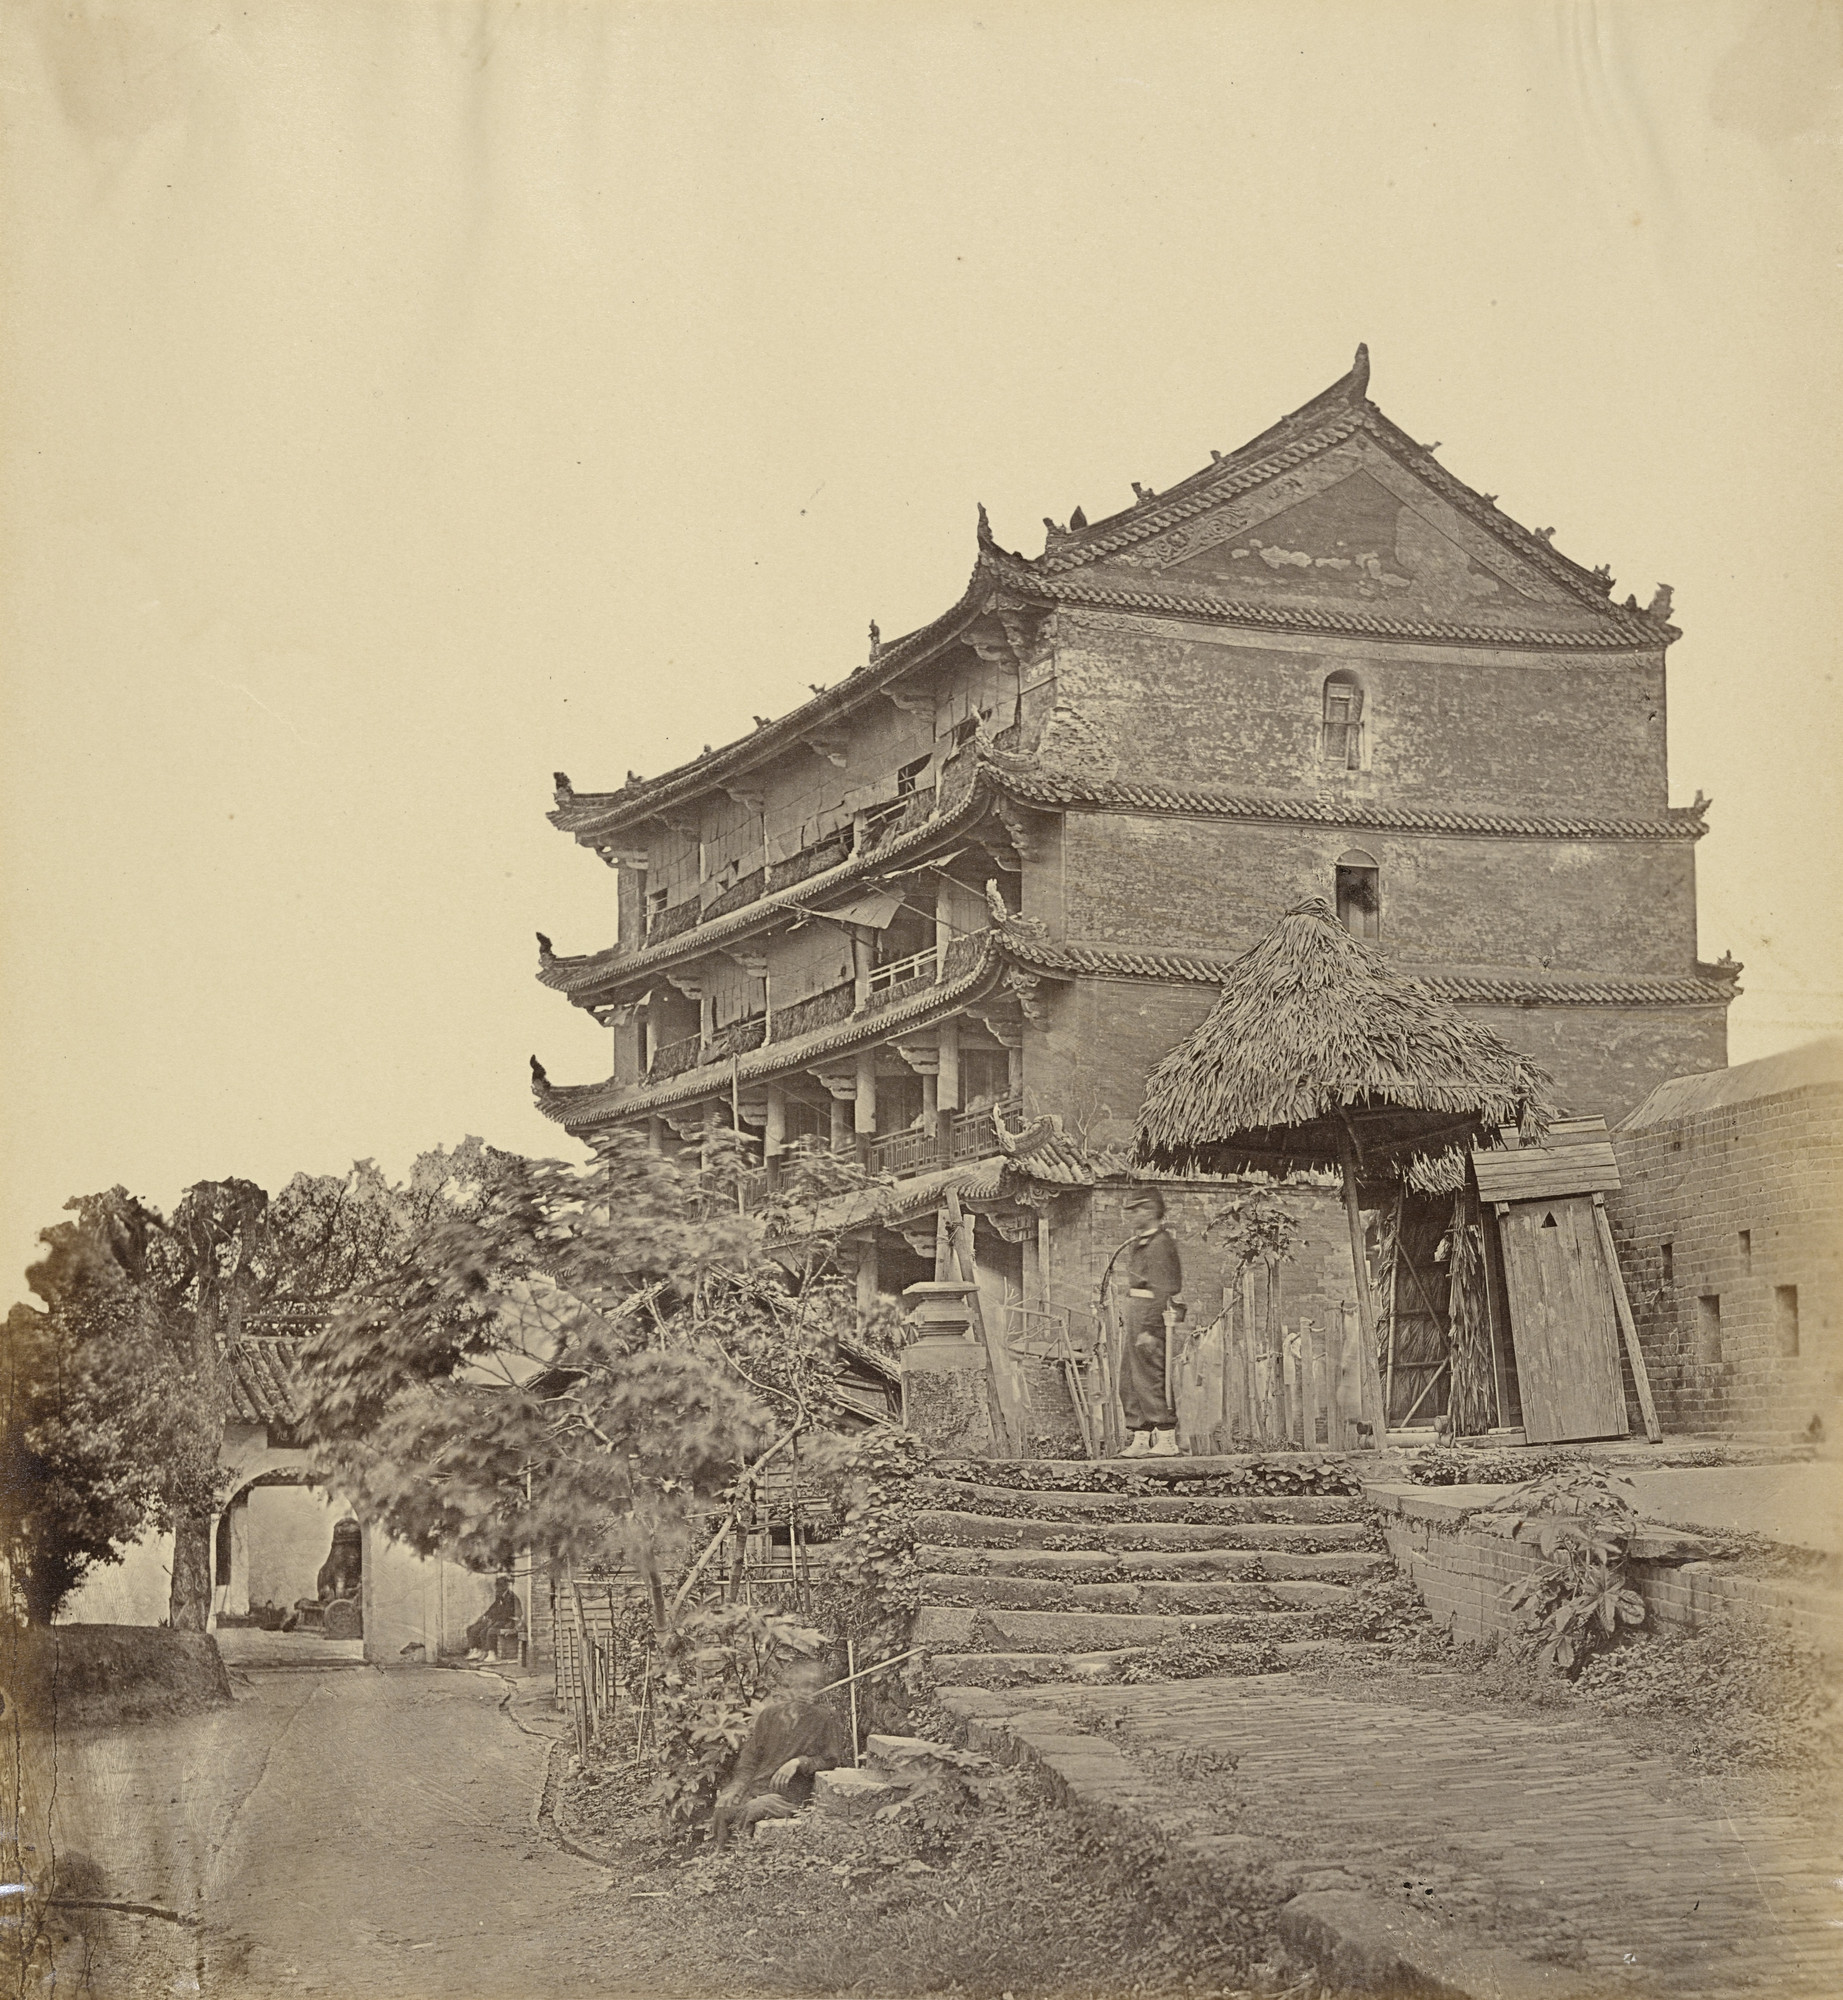 Felice Beato. Five Storied Pagoda, Canton. April 1860